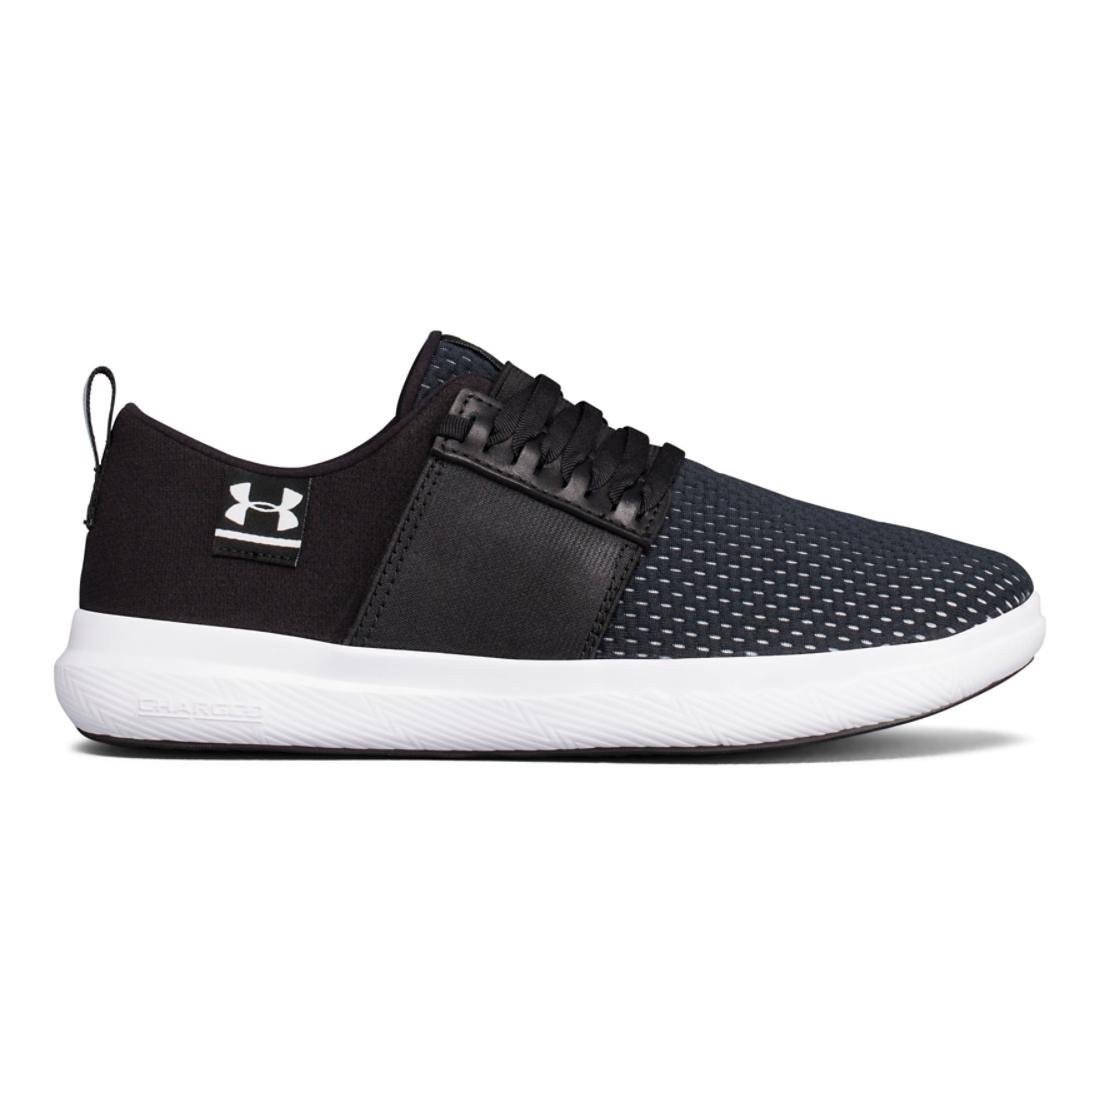 Under Armour Women's Charged 24/7 Low NM Running Shoe B078HHZZ5R 9 B(M) US|Black/White